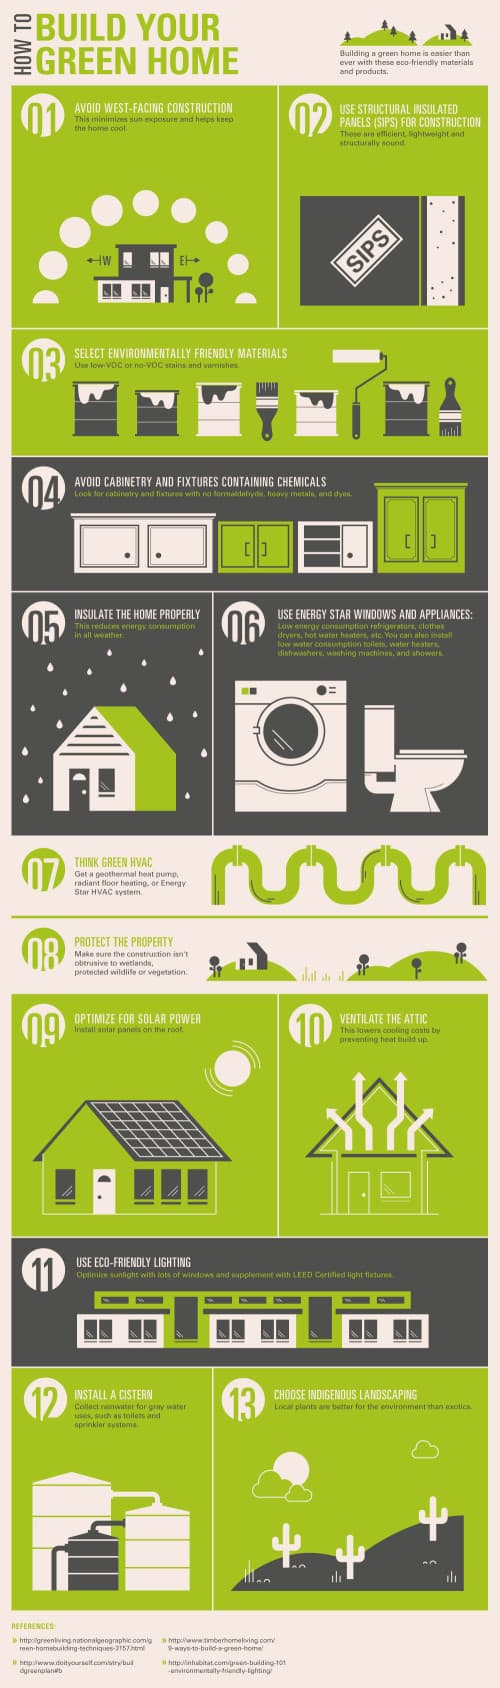 13 tips for building a green home infographic green for Build a green home